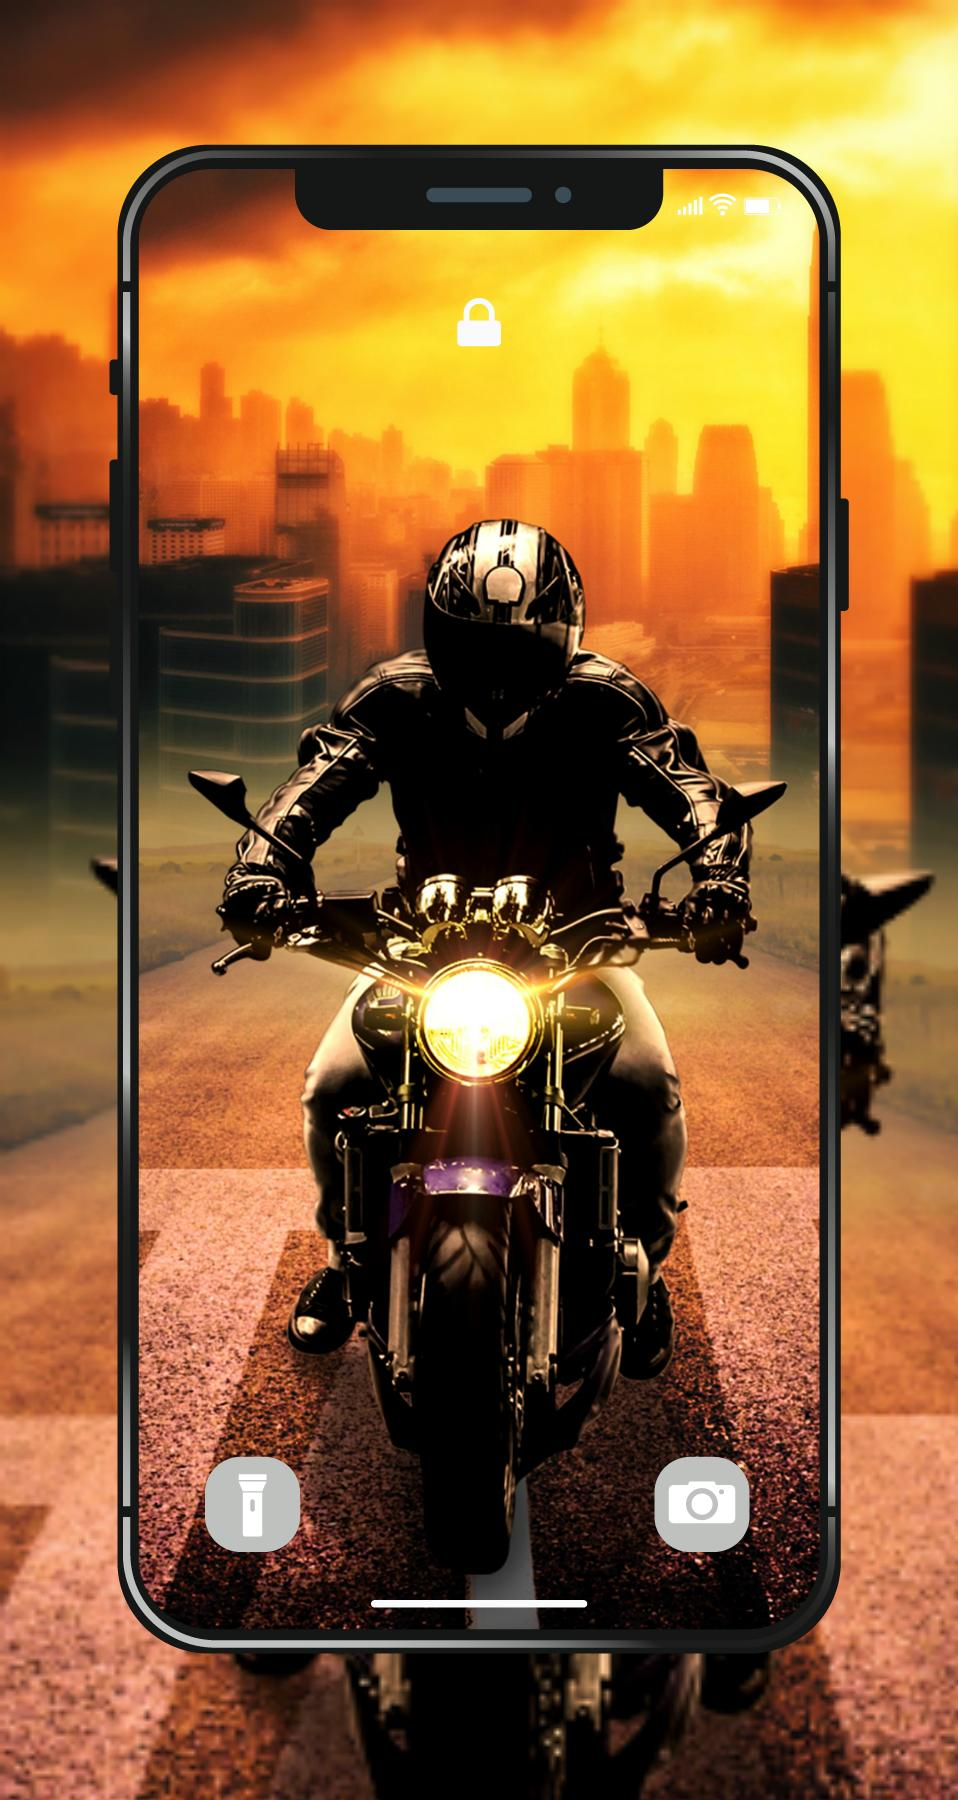 Motorcycle Wallpapers 4k Hd Motorbike Pics For Android Apk Download